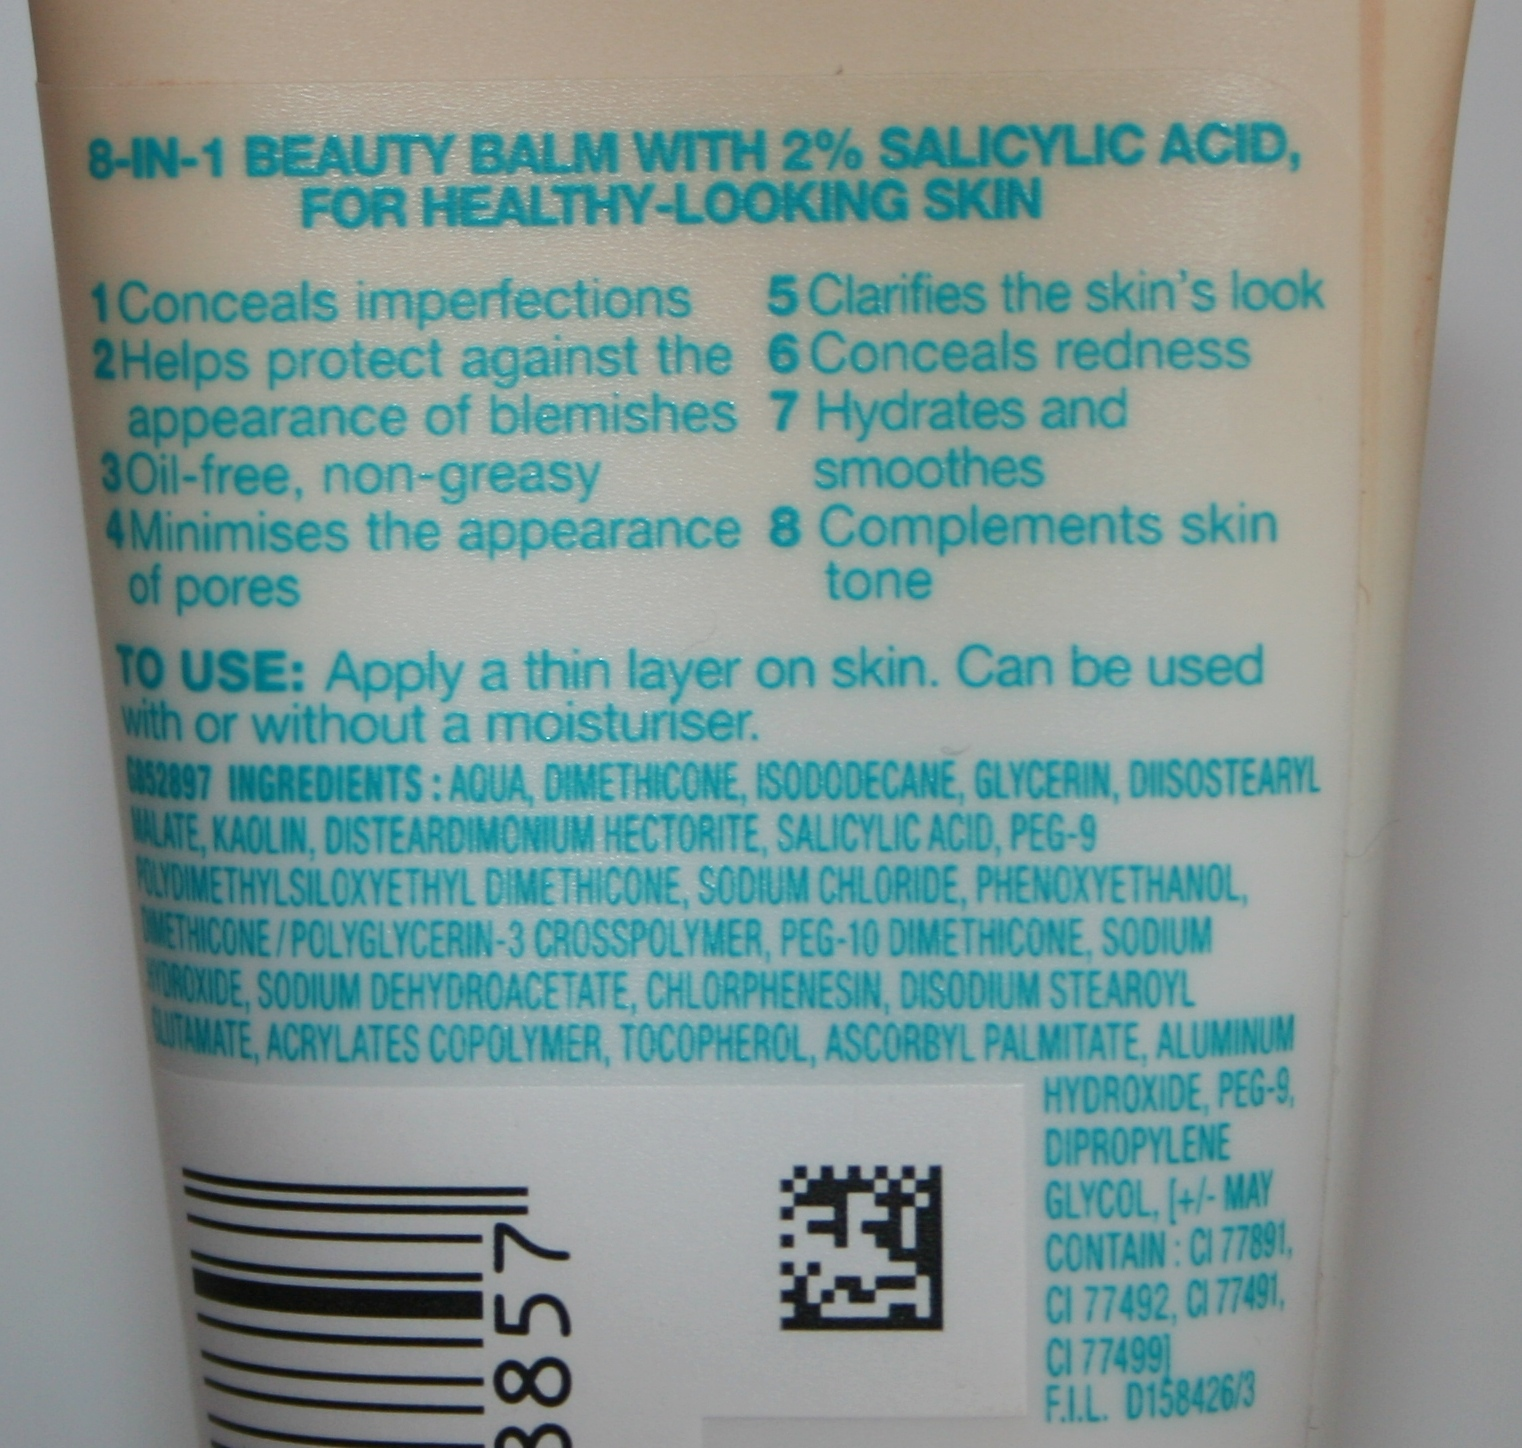 Products containing salicylic acid